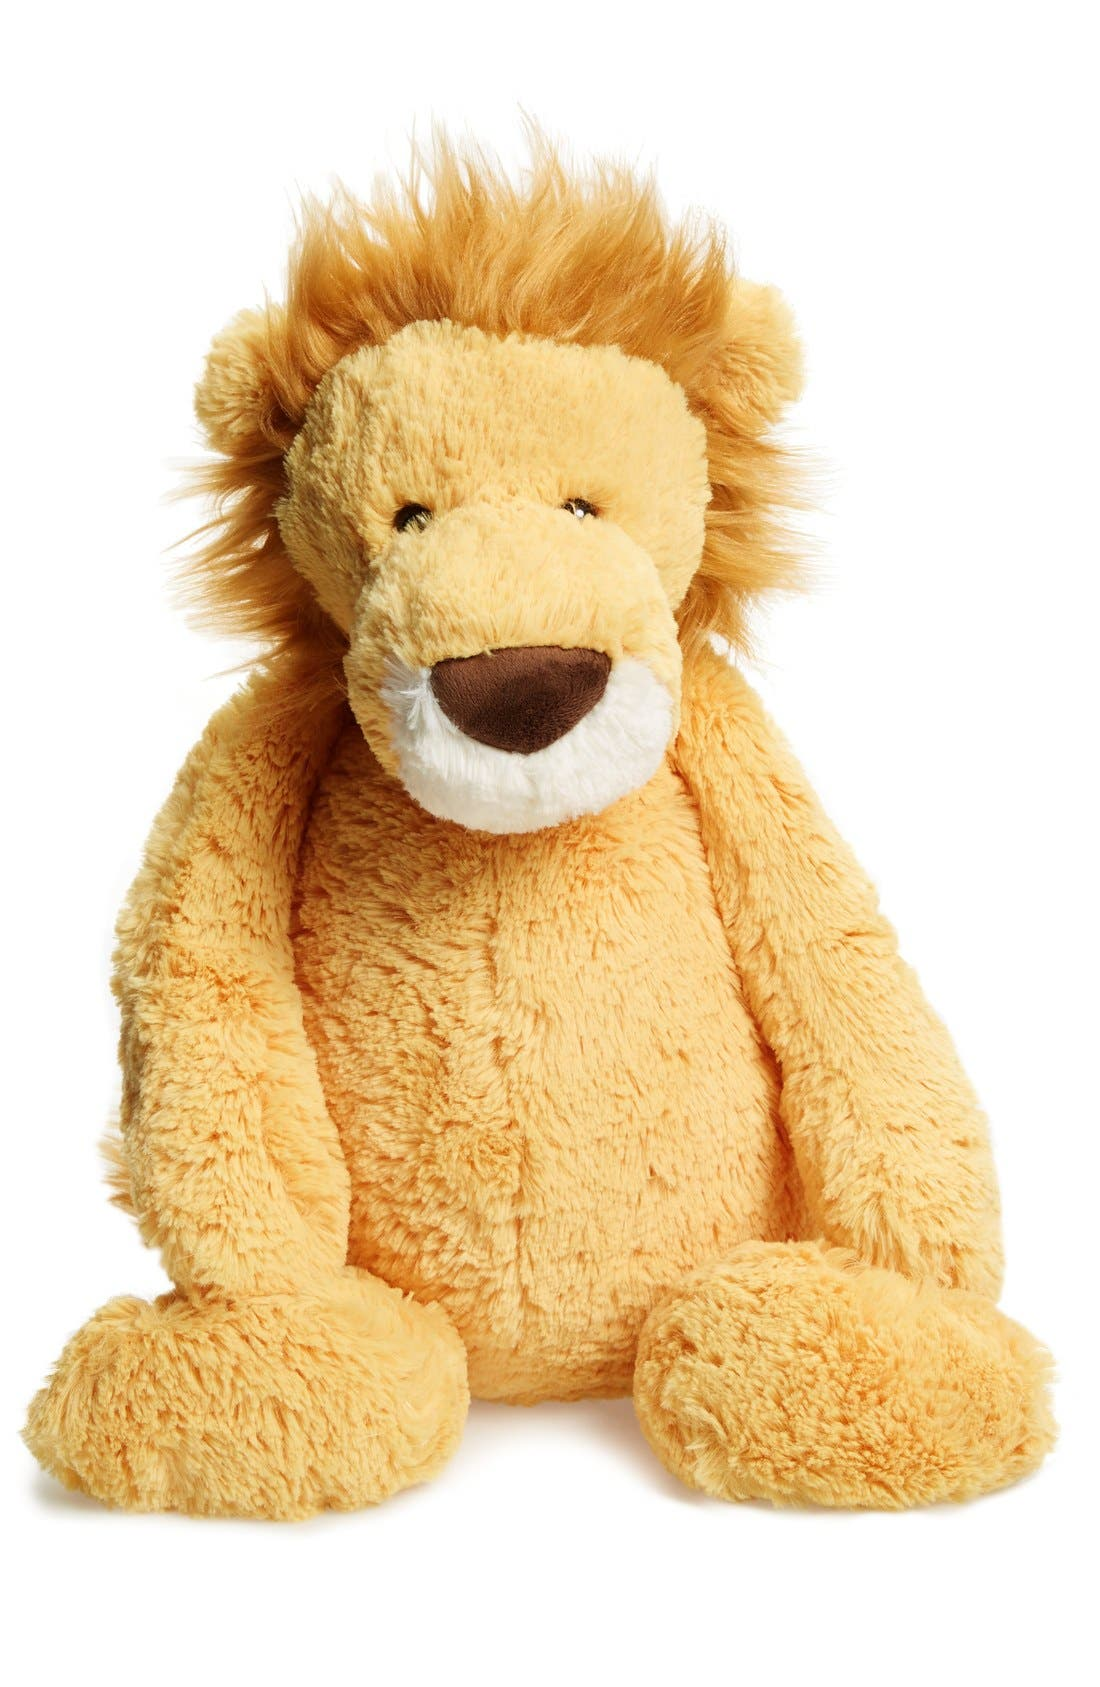 Huge Bashful Lion Stuffed Animal,                             Main thumbnail 1, color,                             710